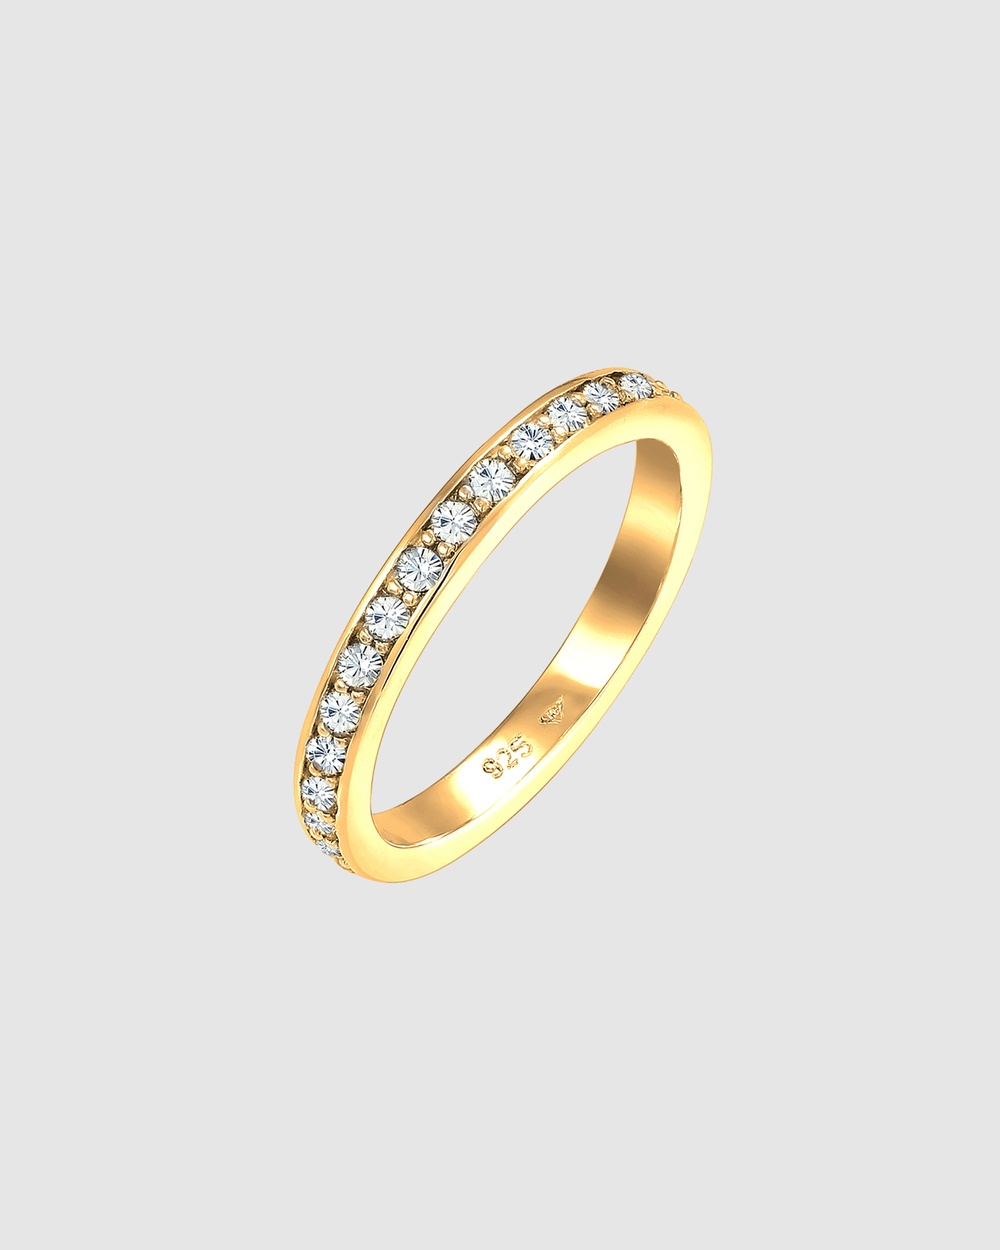 Elli Jewelry Ring Glamourous with Crystals in 925 Sterling Silver gold plated Jewellery Gold